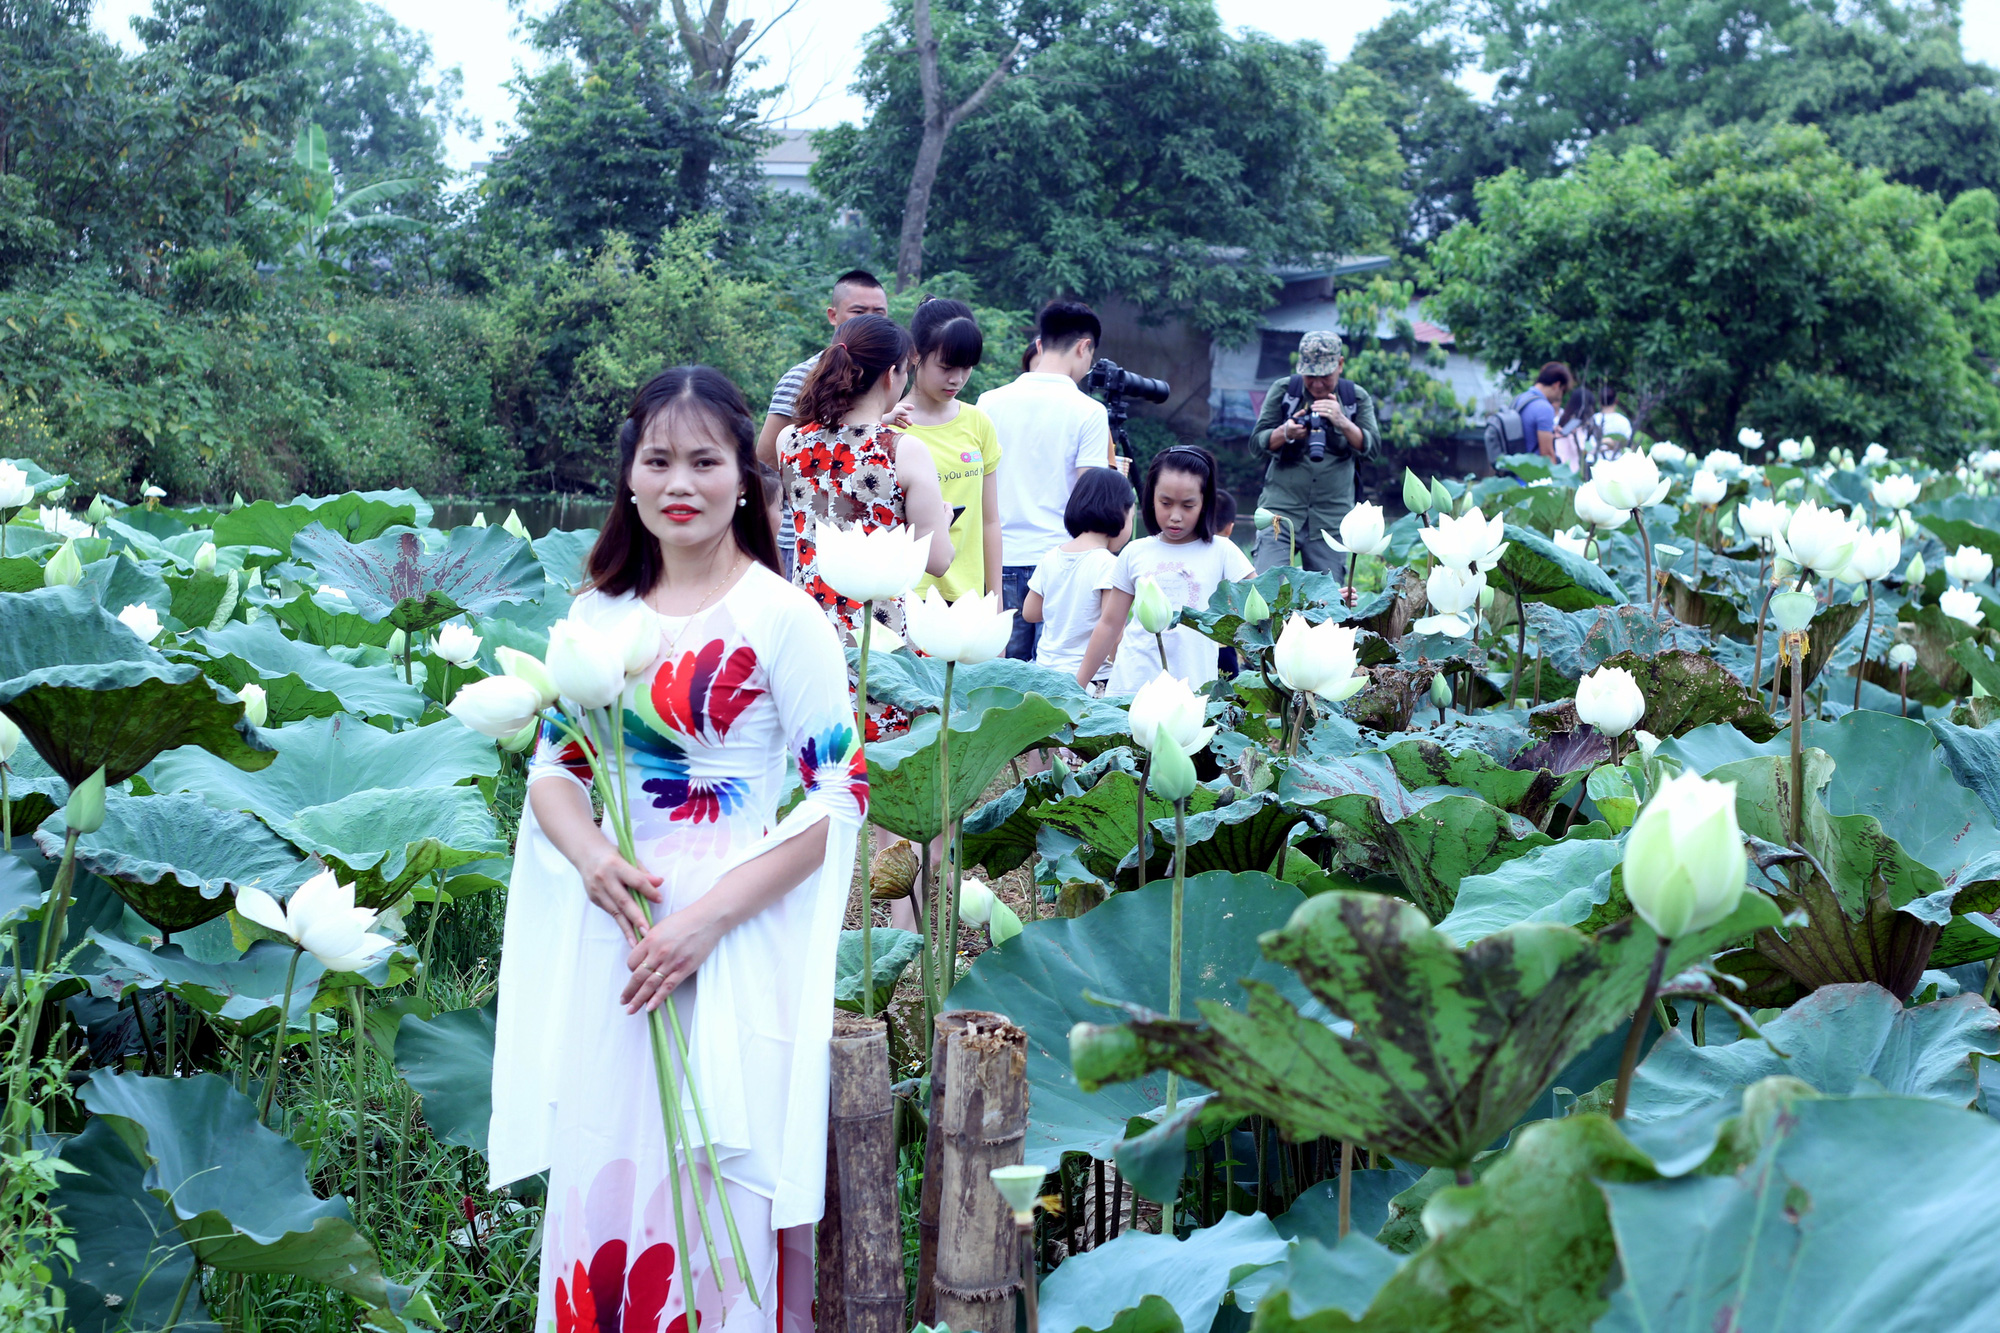 Visitors at a white lotus pond in Tam Hung Commune, Thanh Oai District, Hanoi, Vietnam in this photo taken in May 2020. Photo: Duong Lieu / Tuoi Tre